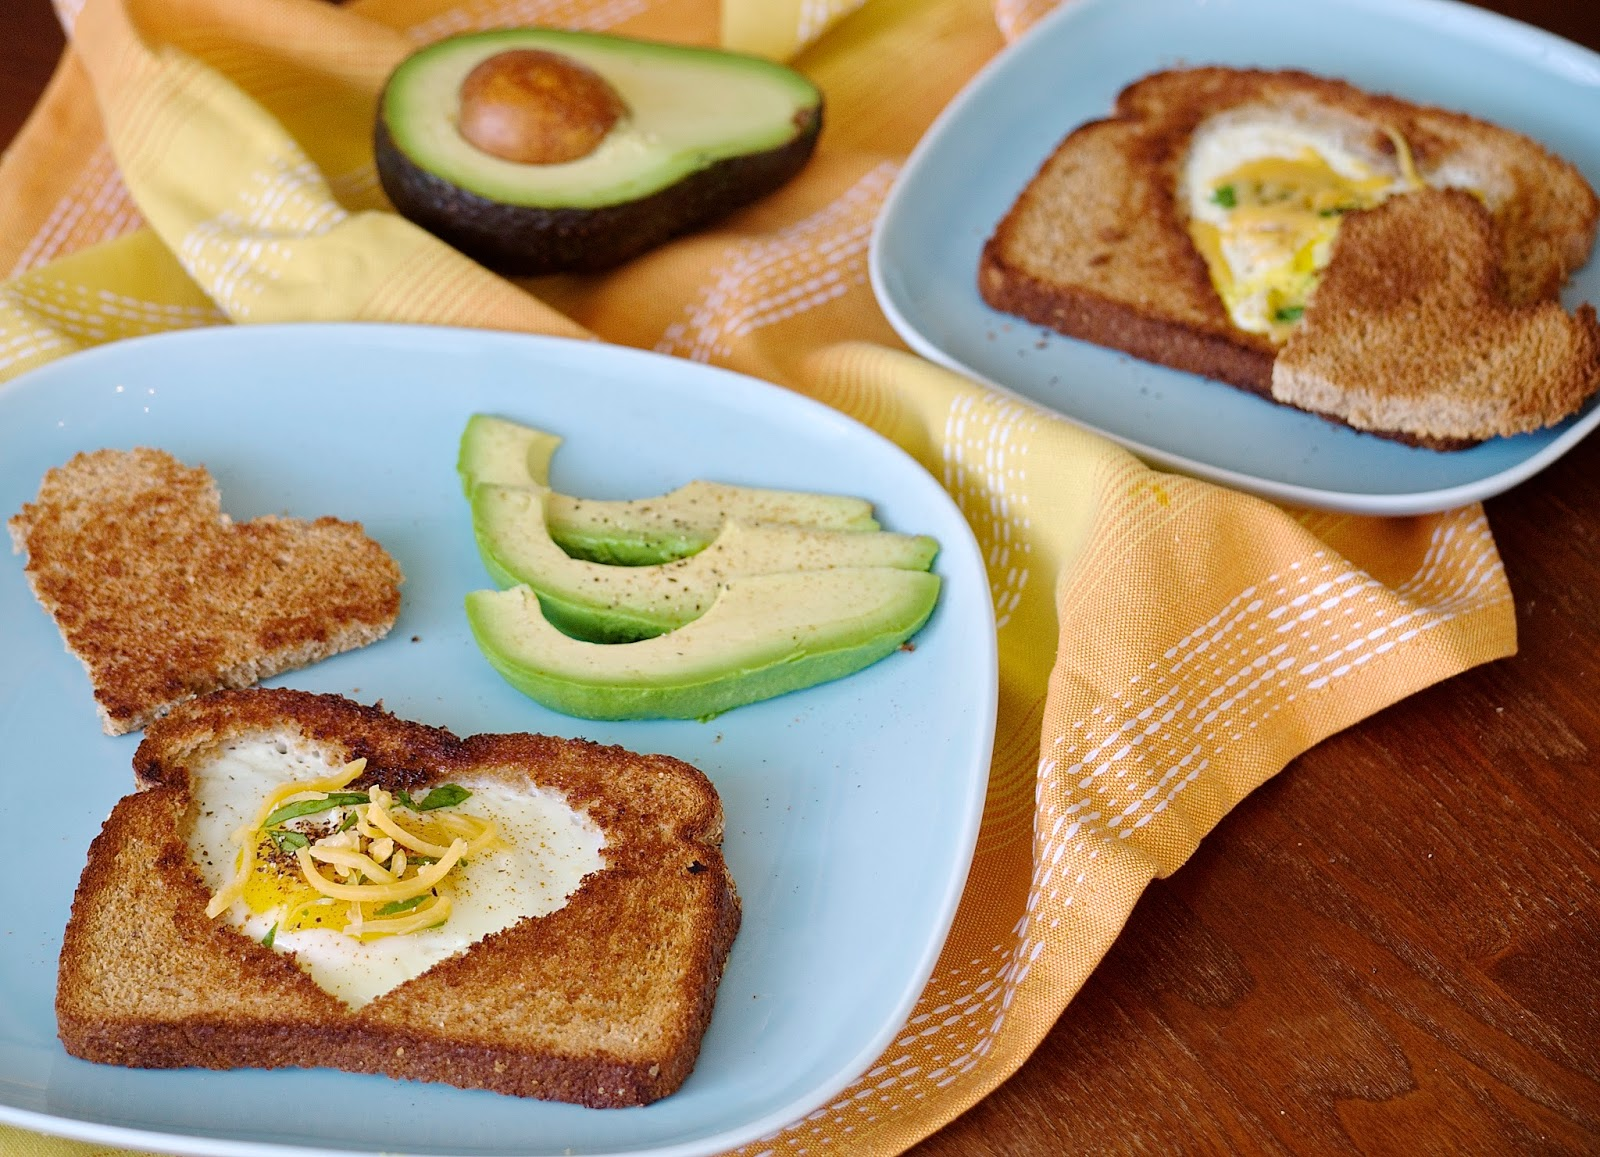 Obsessive Cooking Disorder: Eggs in a Basket (Fried Egg in Toast)